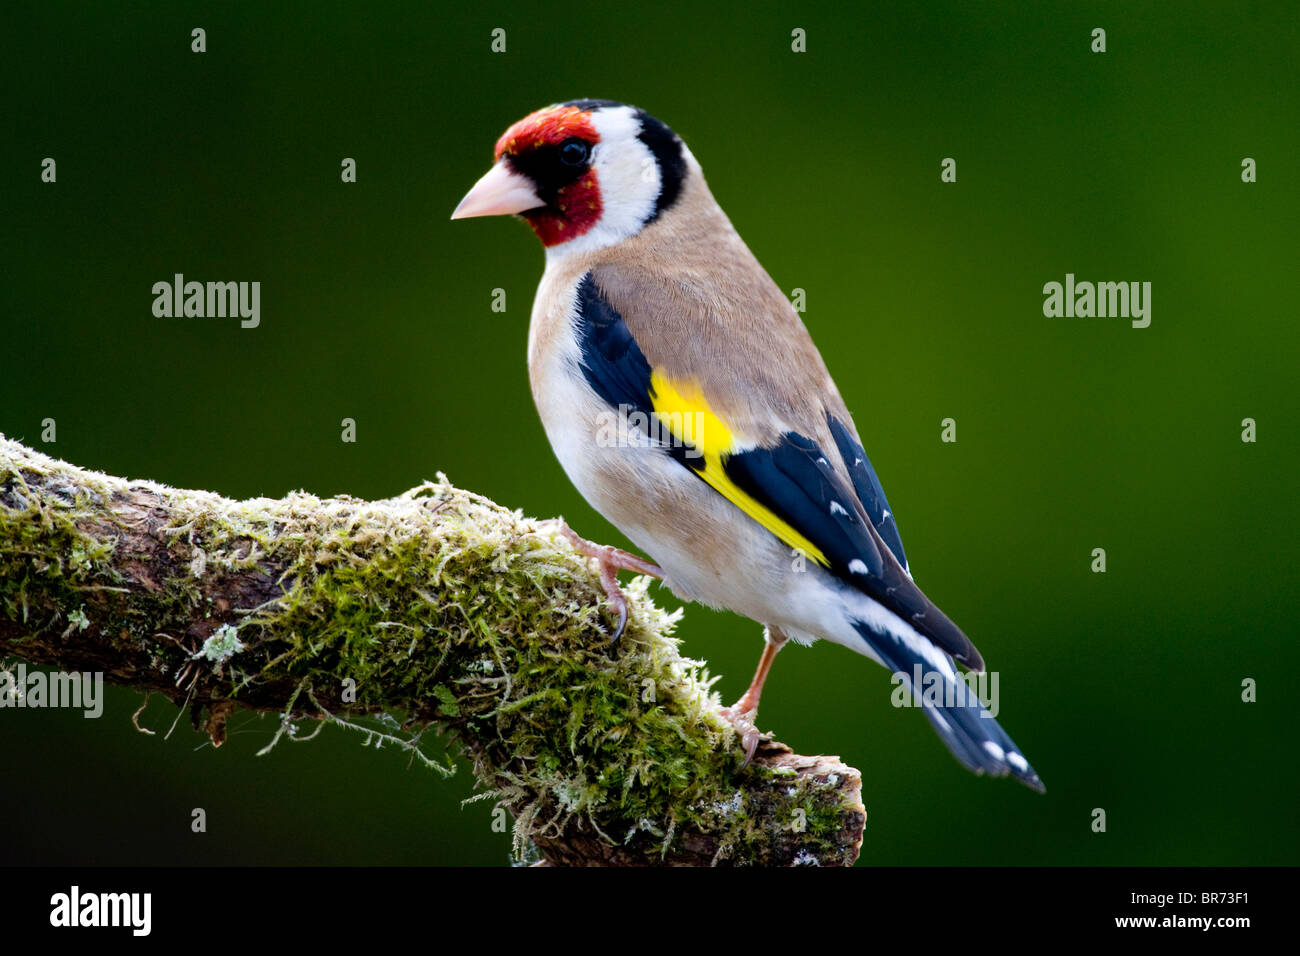 Goldfinch on a mossy / moss perch Carduelis carduelis - Stock Image